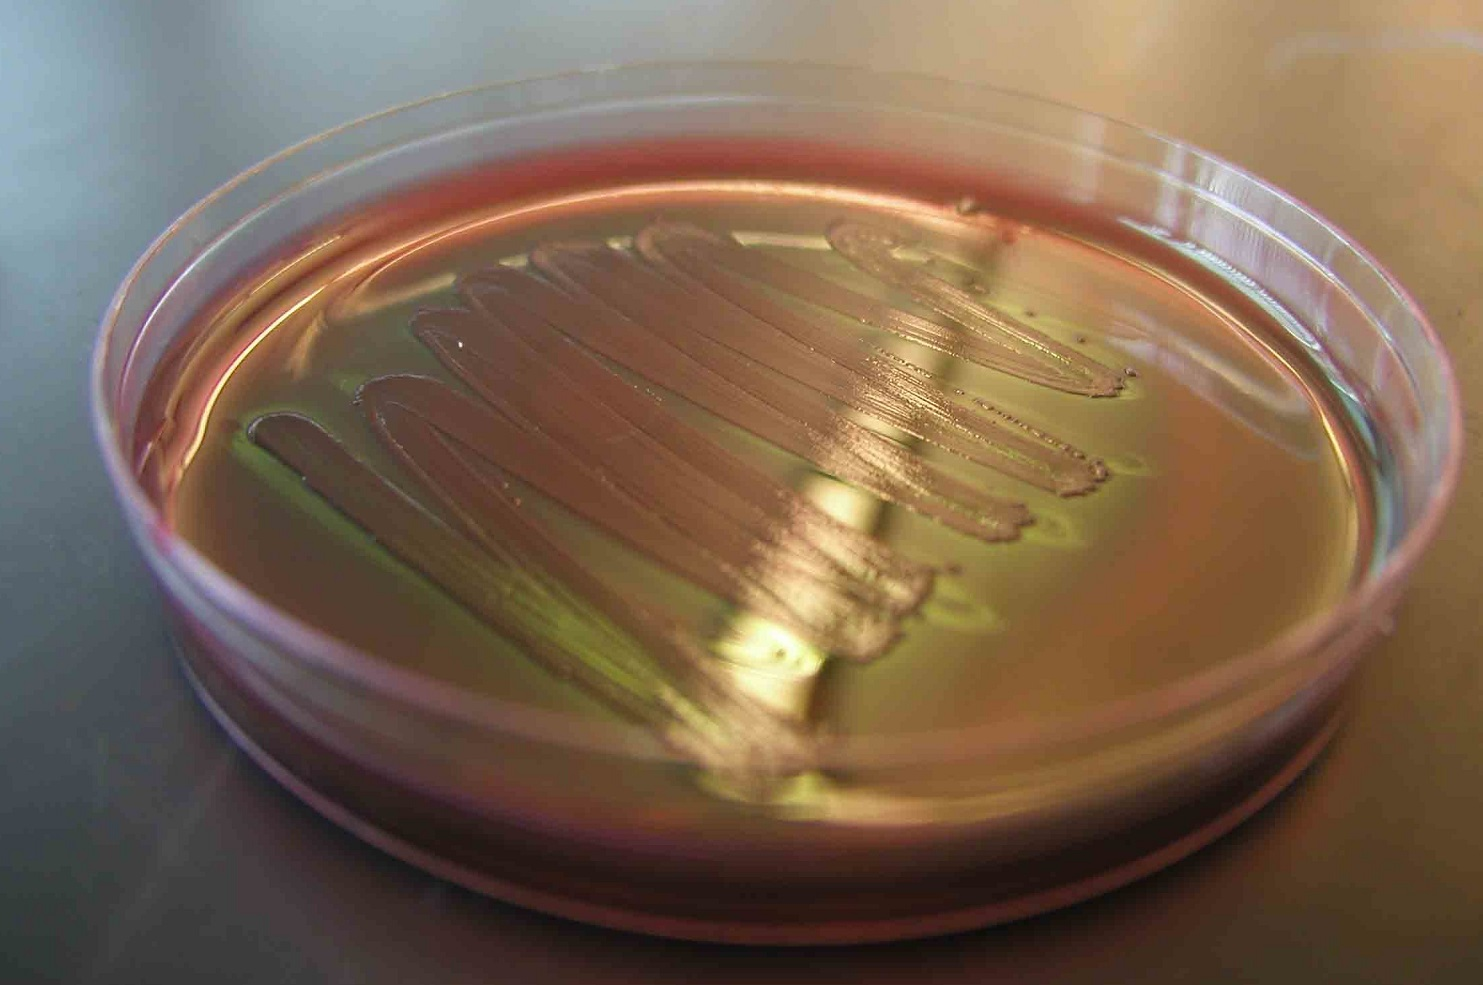 E. coli in petri dish